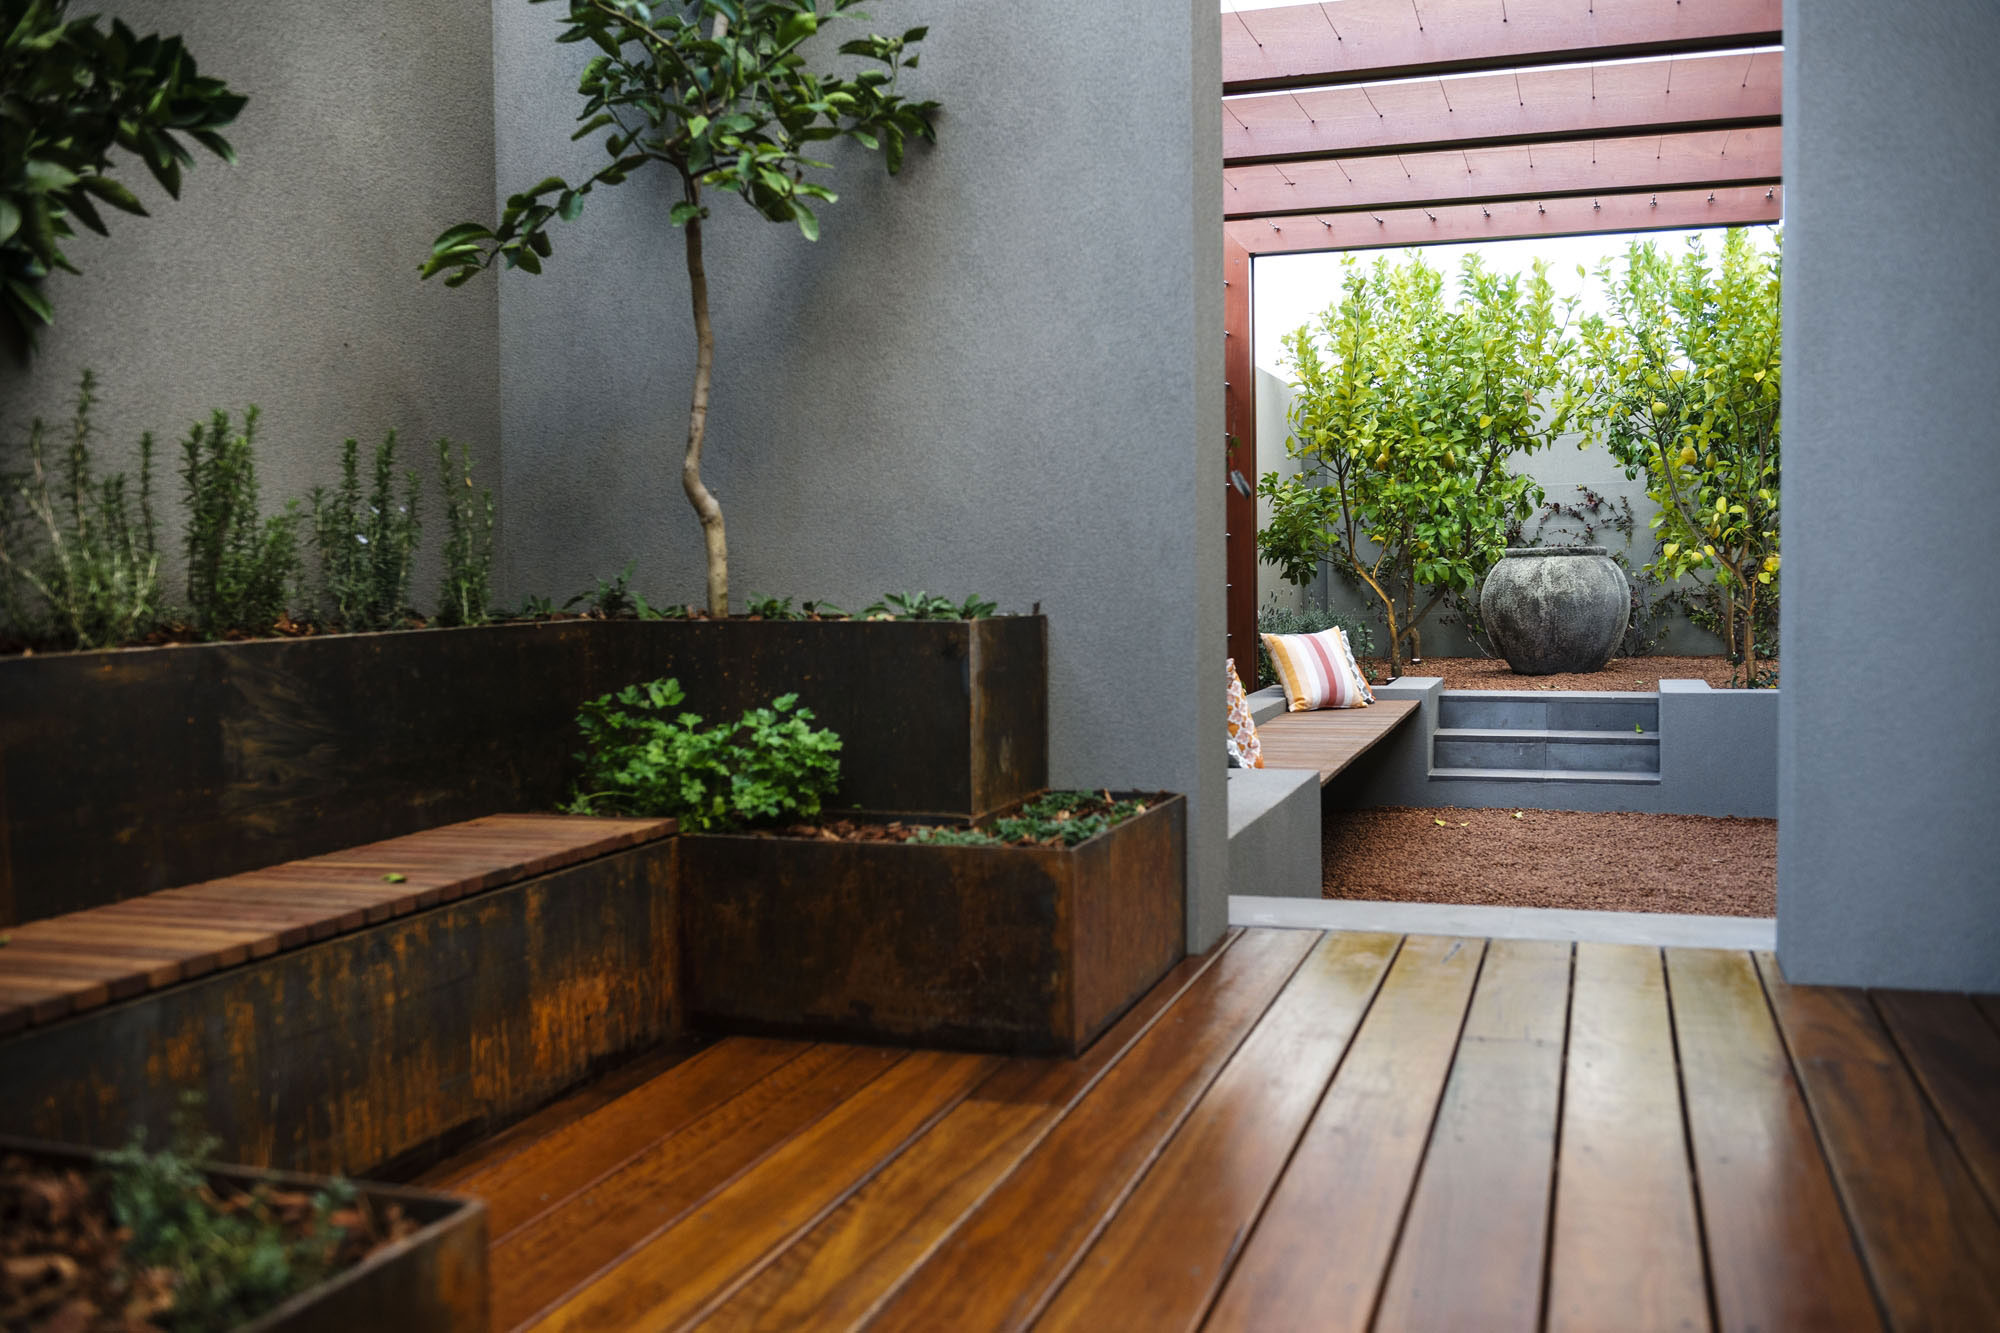 Herb Garden, Courtyard, Modern Home in Wandi, Perth